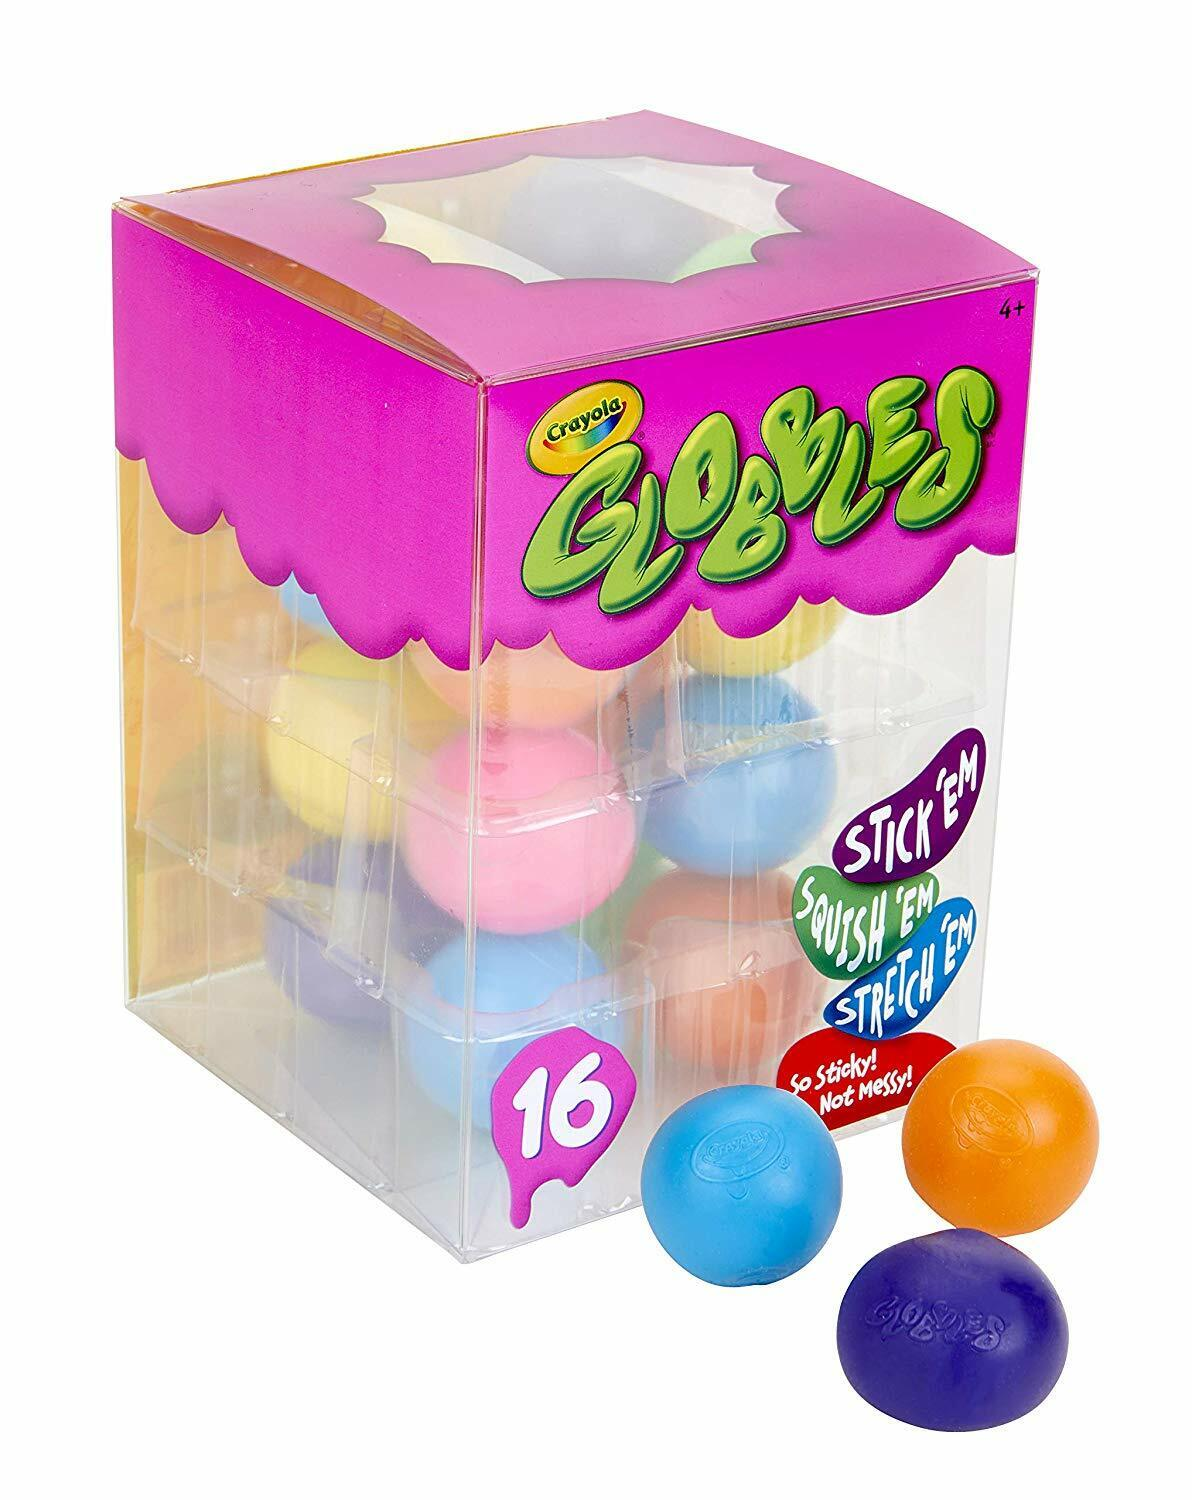 Crayola Globbles 16Count, Squish & Fidget Toys, Gift for Kid